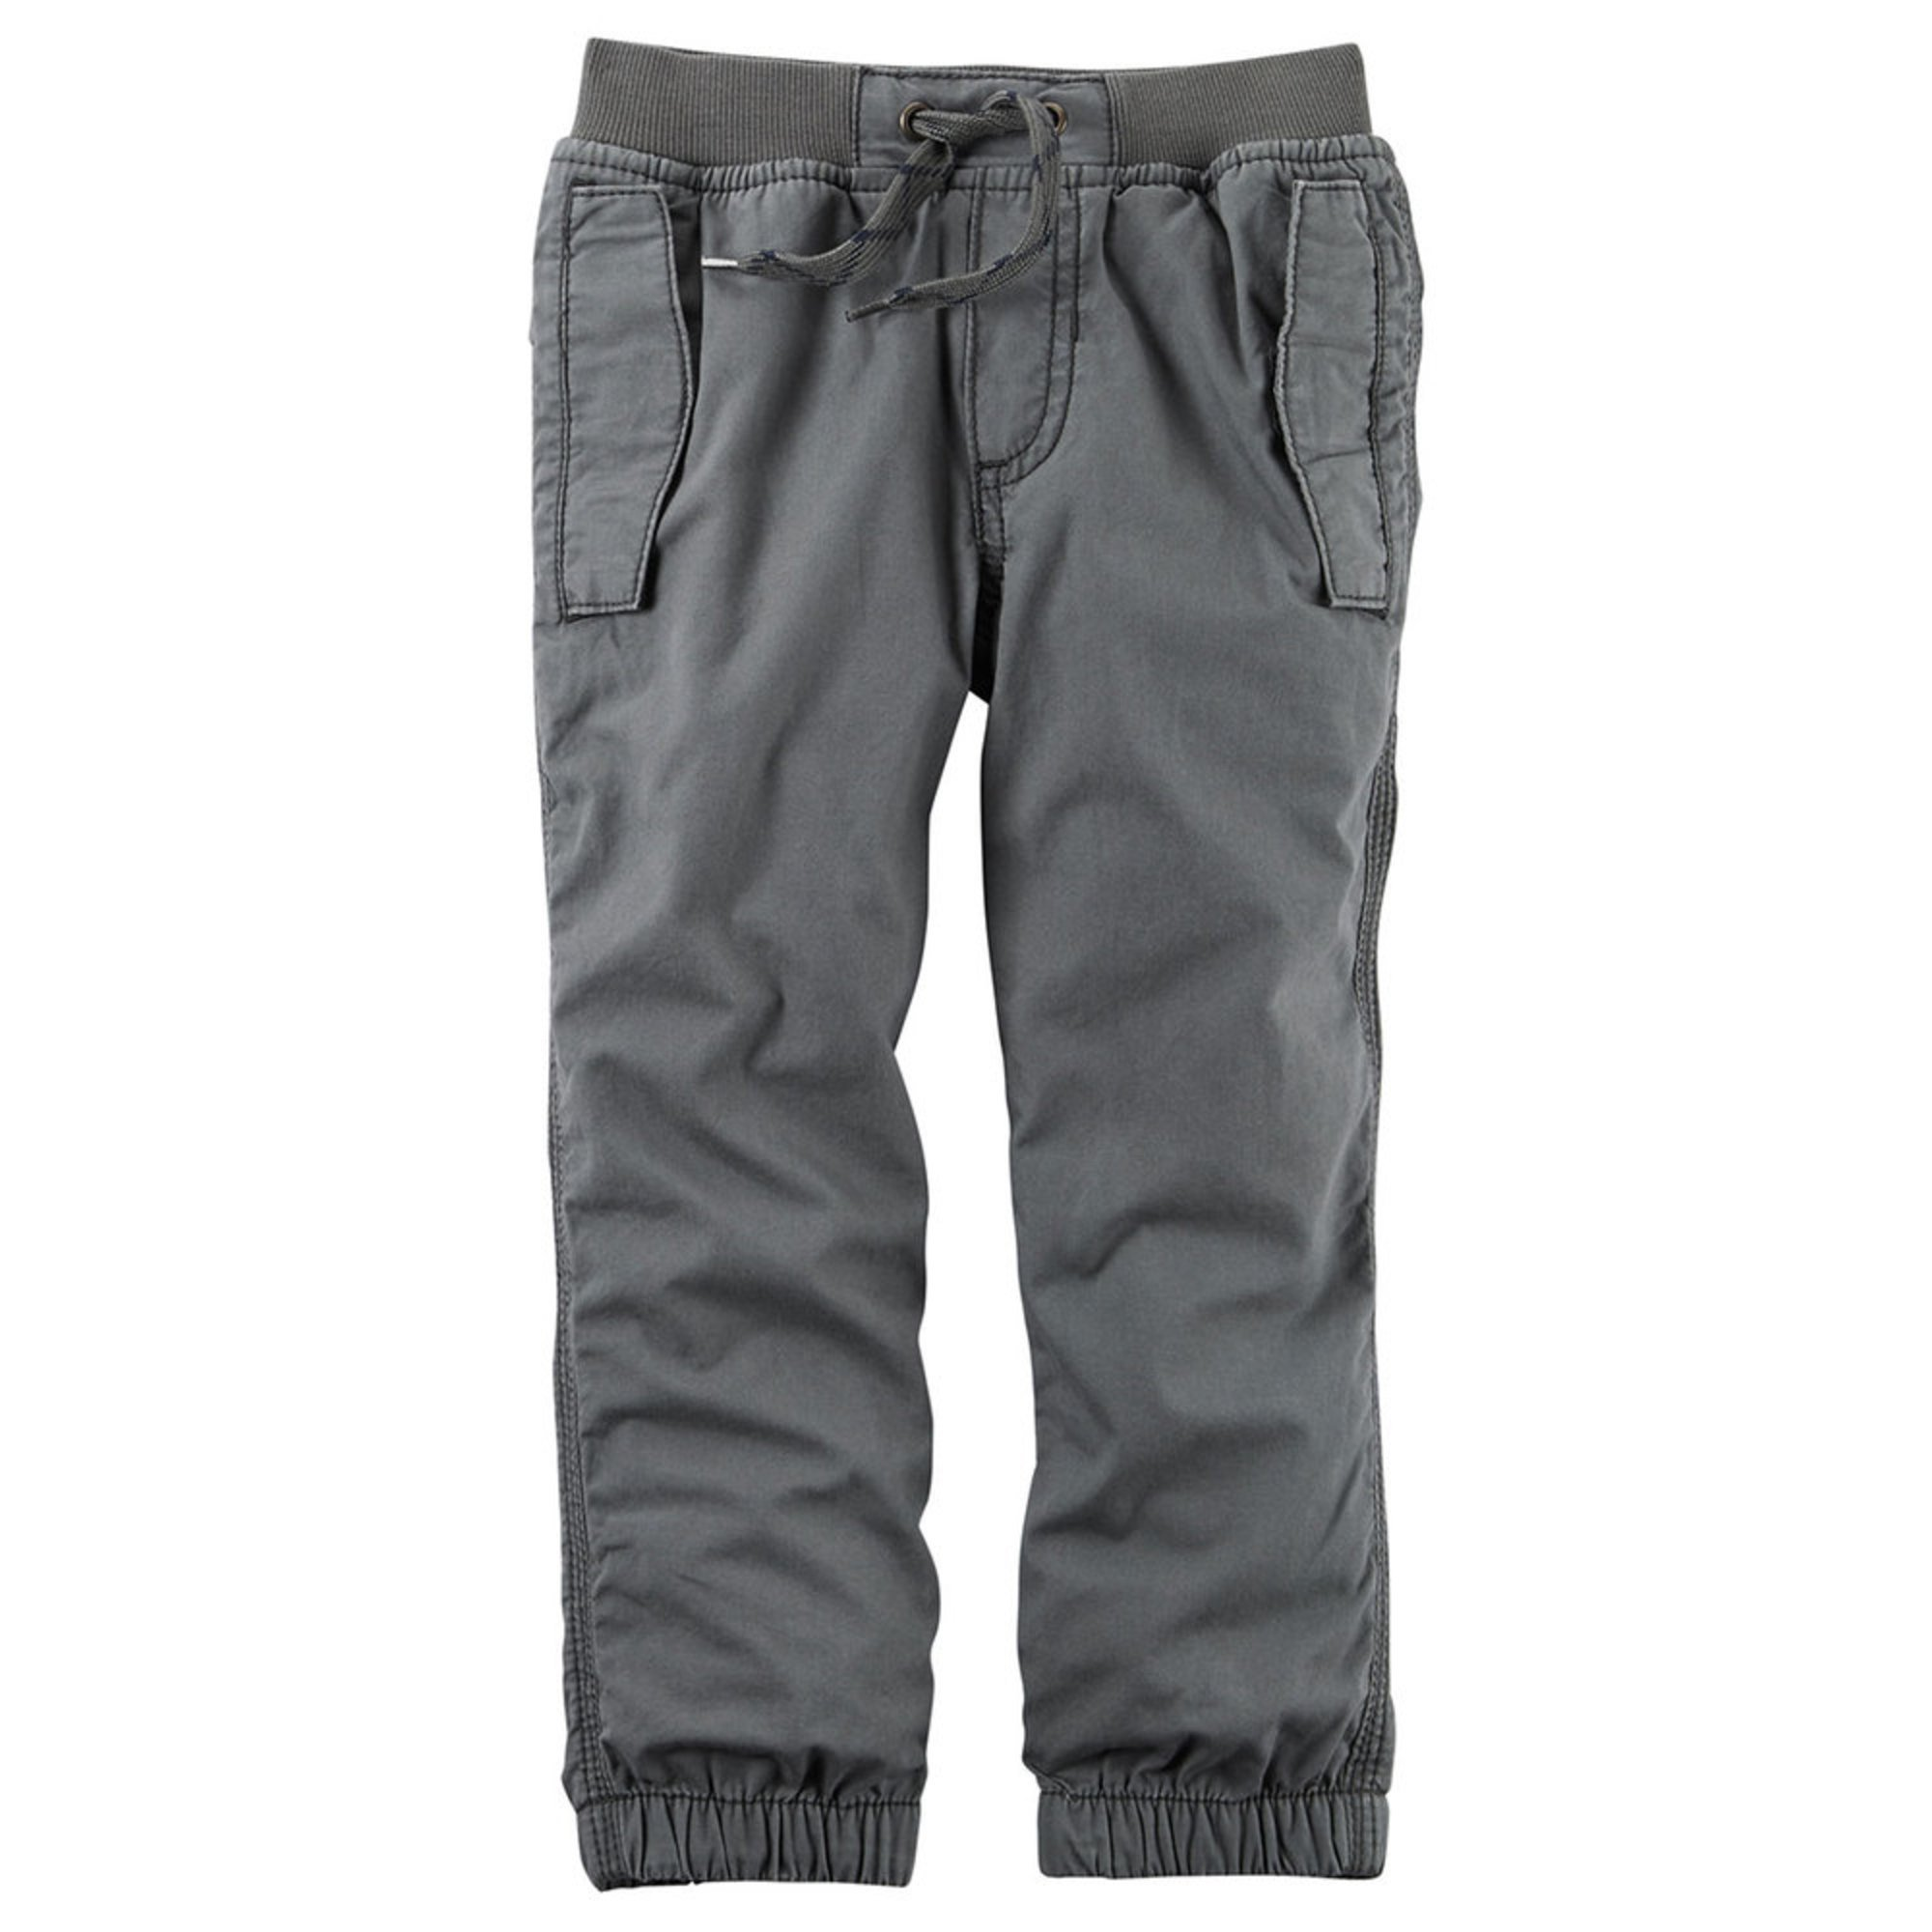 Shop for boys grey slacks online at Target. Free shipping on purchases over $35 and save 5% every day with your Target REDcard.